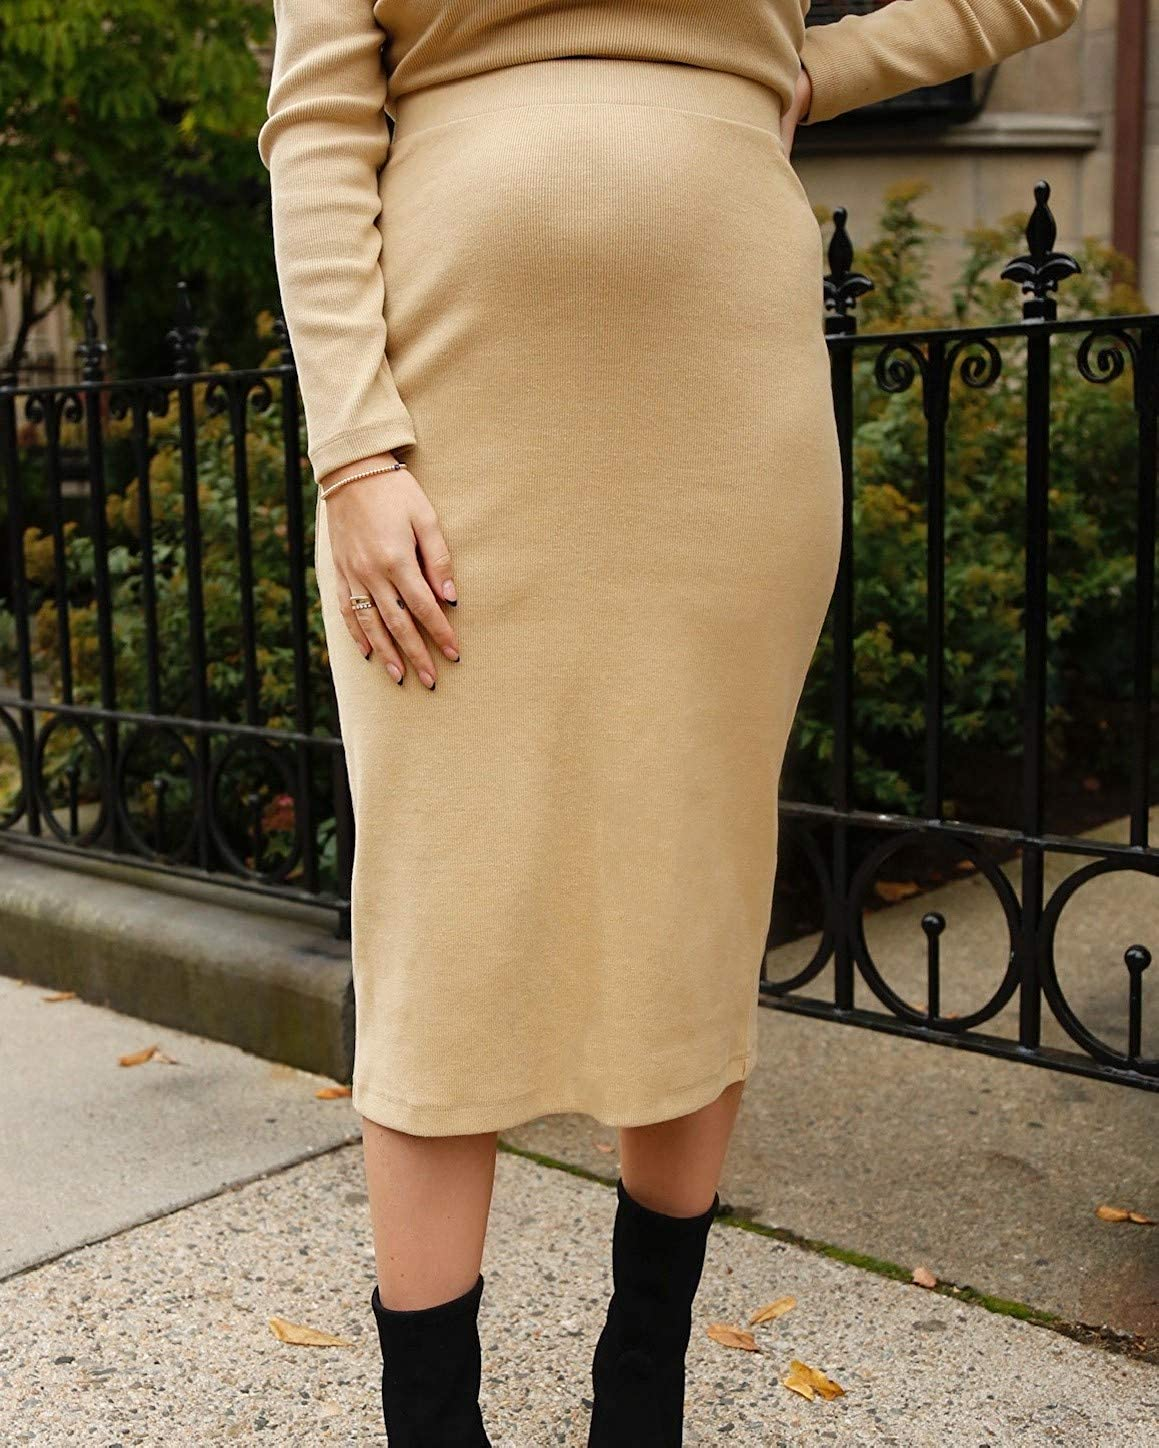 The Drop Women's Tan Fitted Midi Skirt by @somewherelately